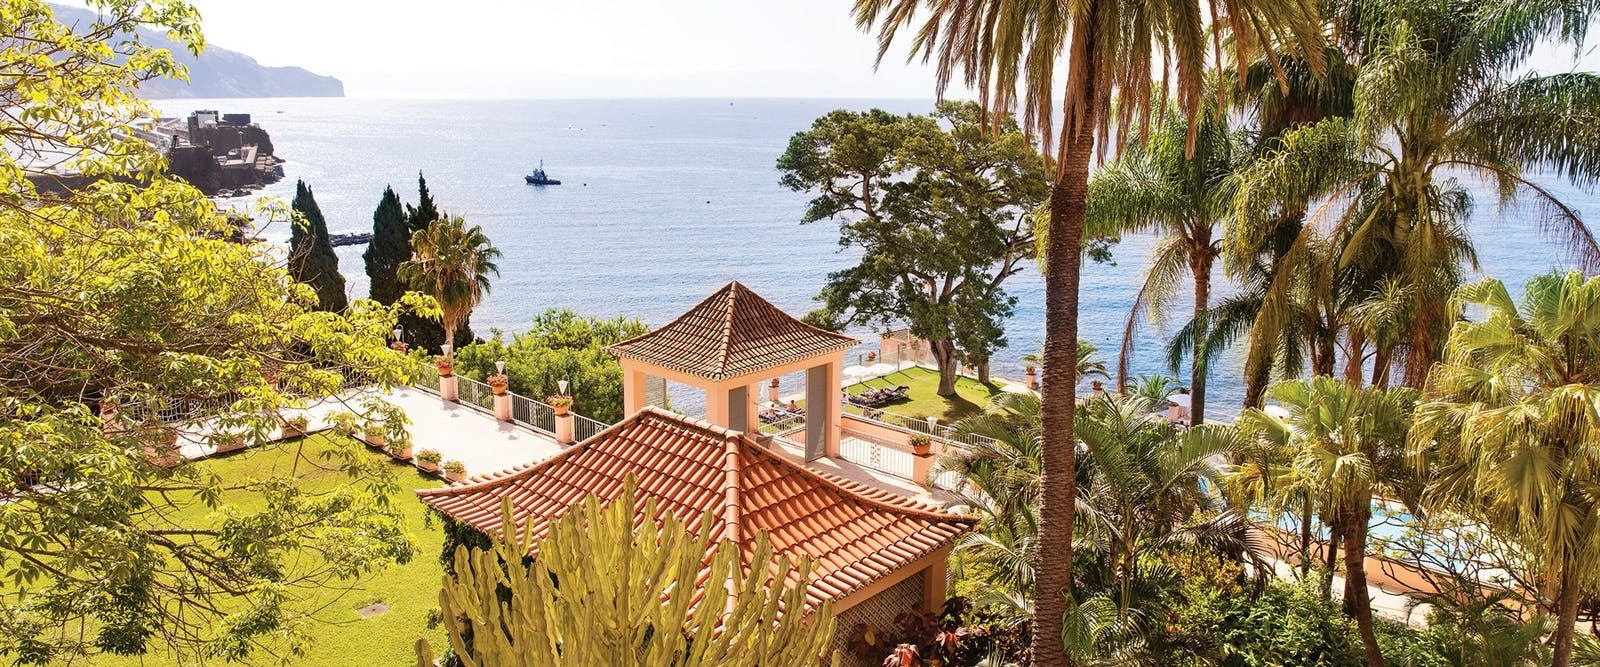 The View from Reid's Palace, A Belmond Hotel, Madeira, Portugal